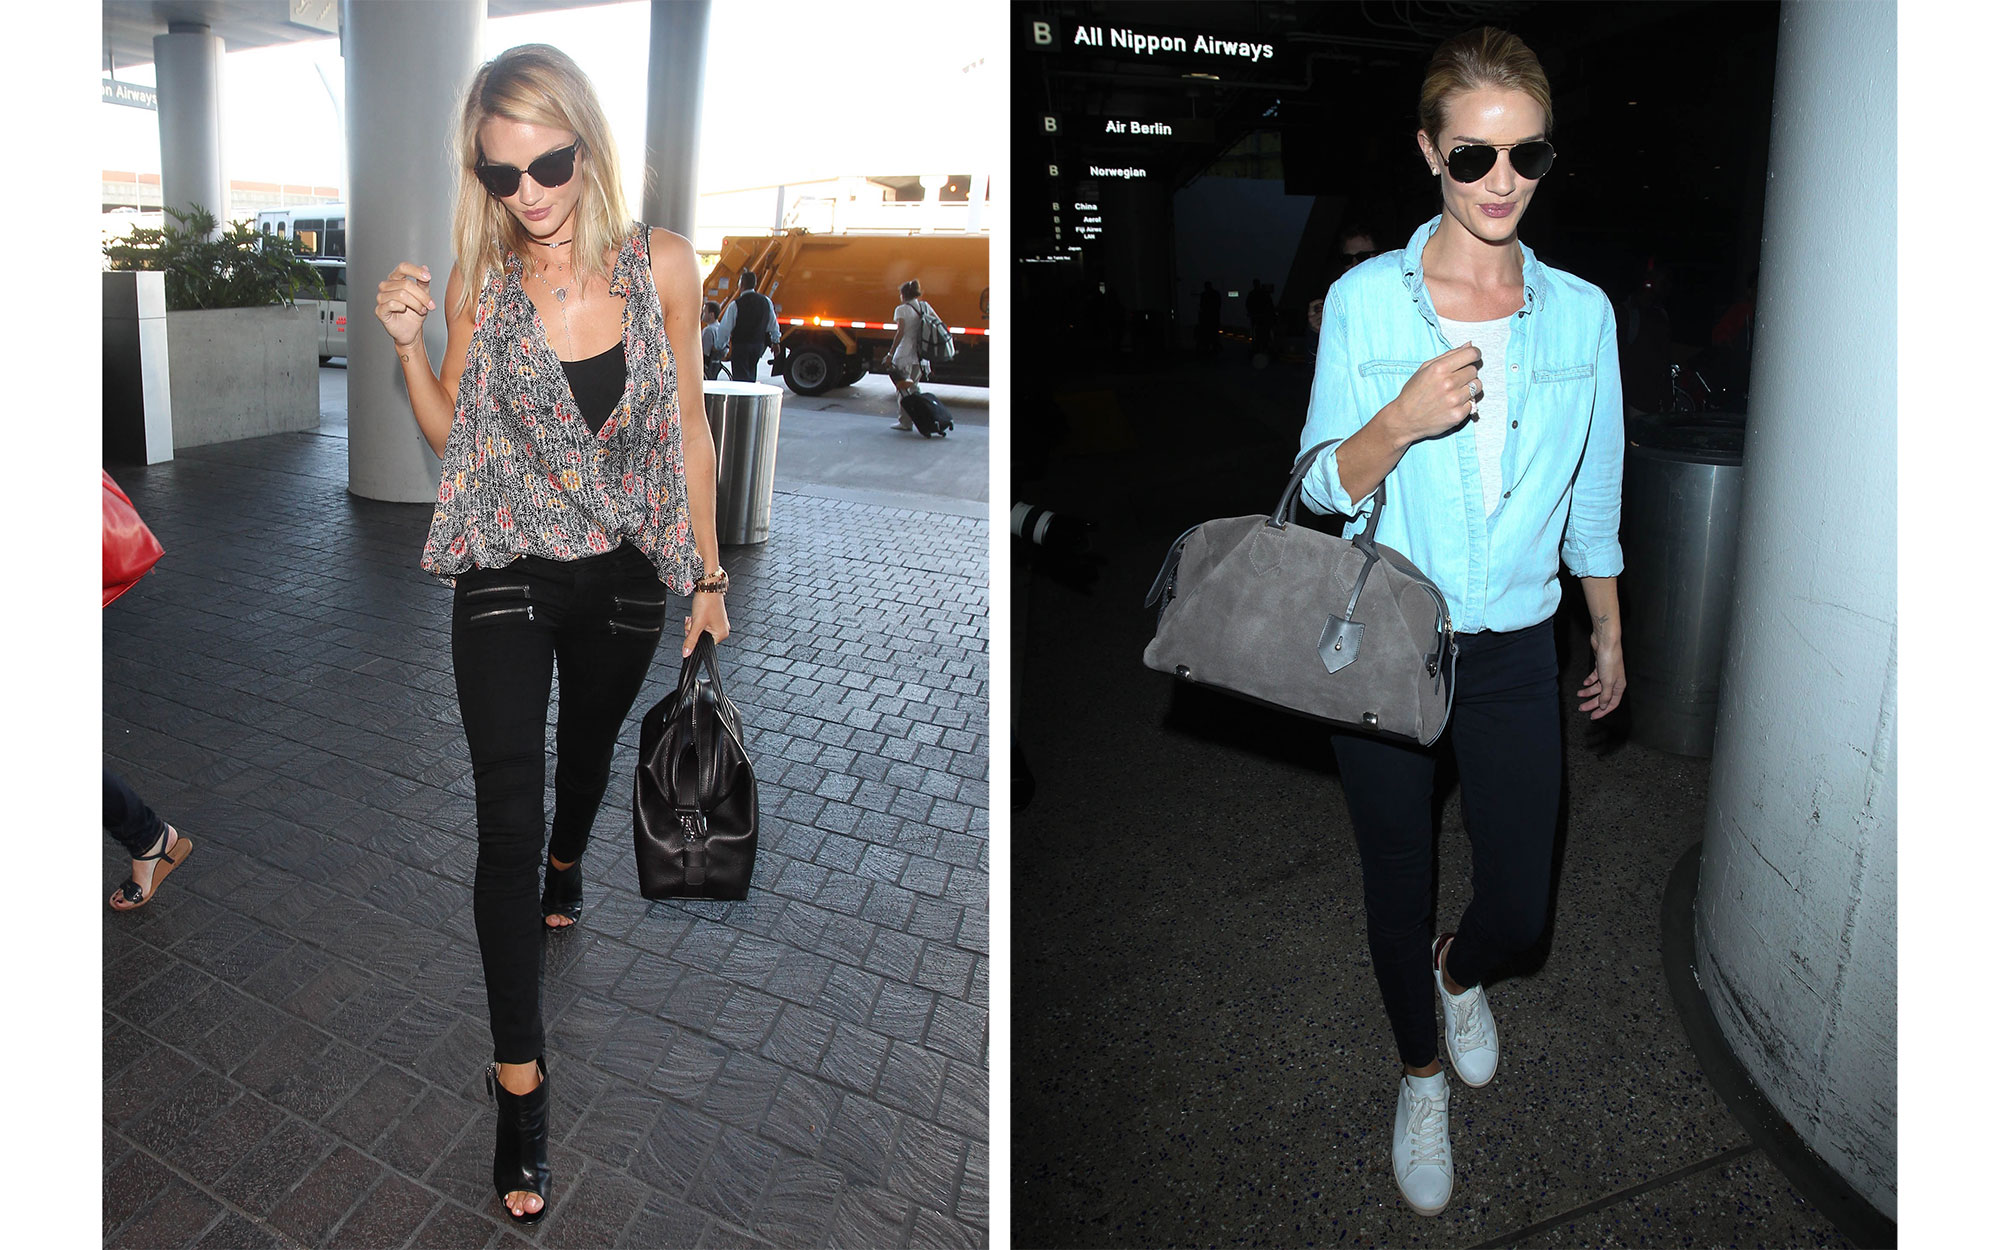 Celebrity Airport Style: Rosie Huntington-Whiteley